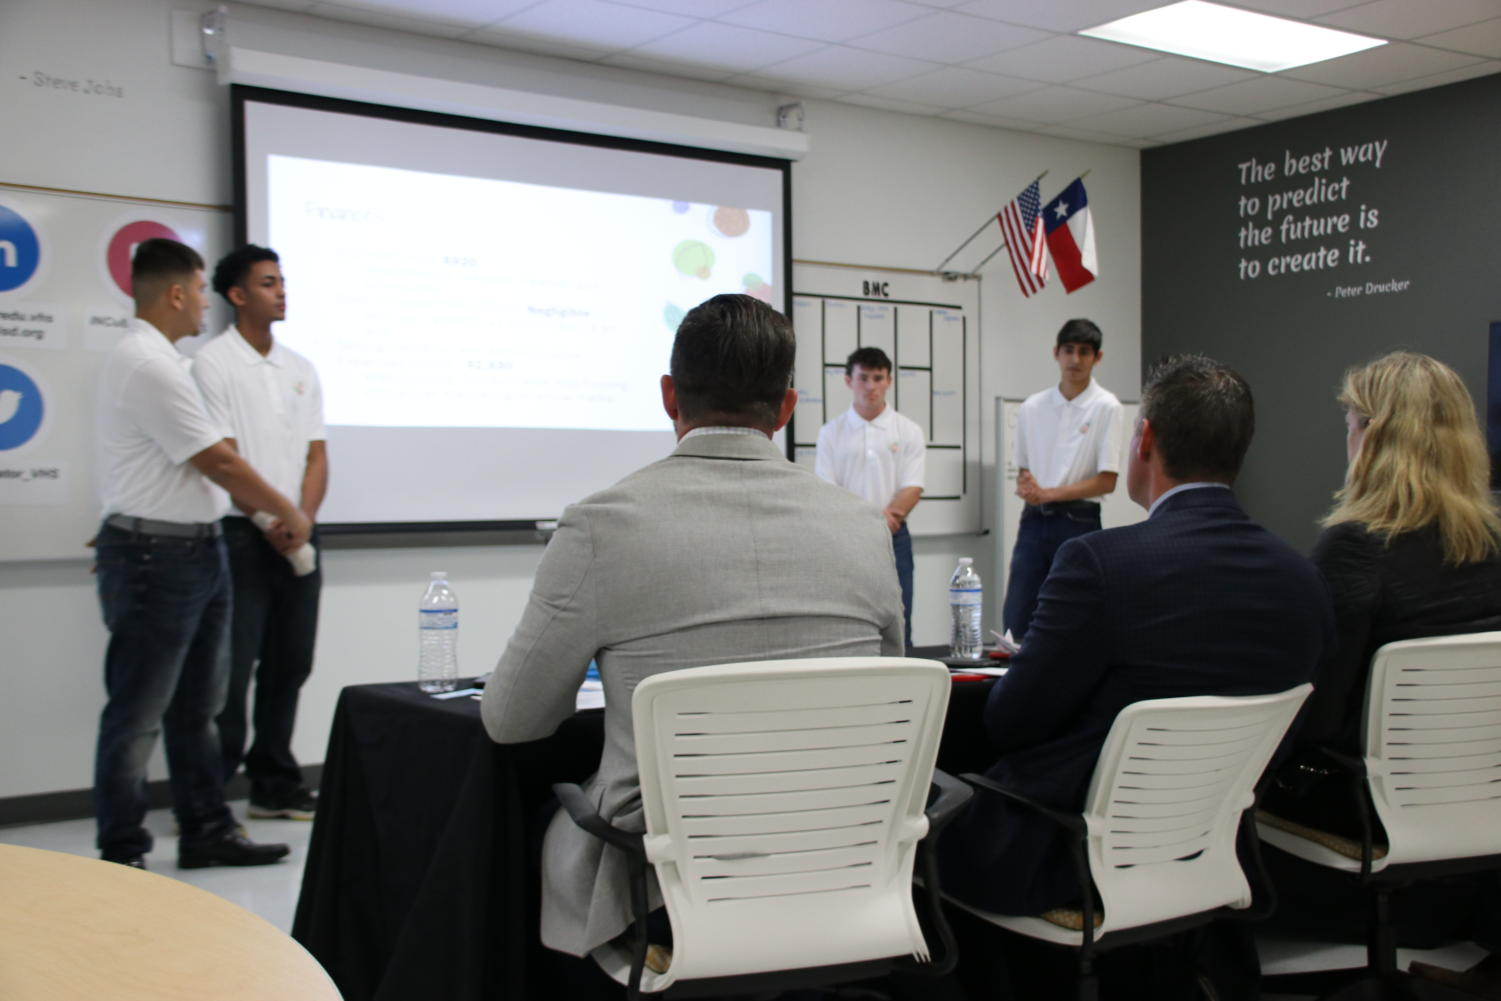 Christian Montelogue, Fariss Awad, Grant Shaffer and Omar Azad pitched their MVP to panel of judges.